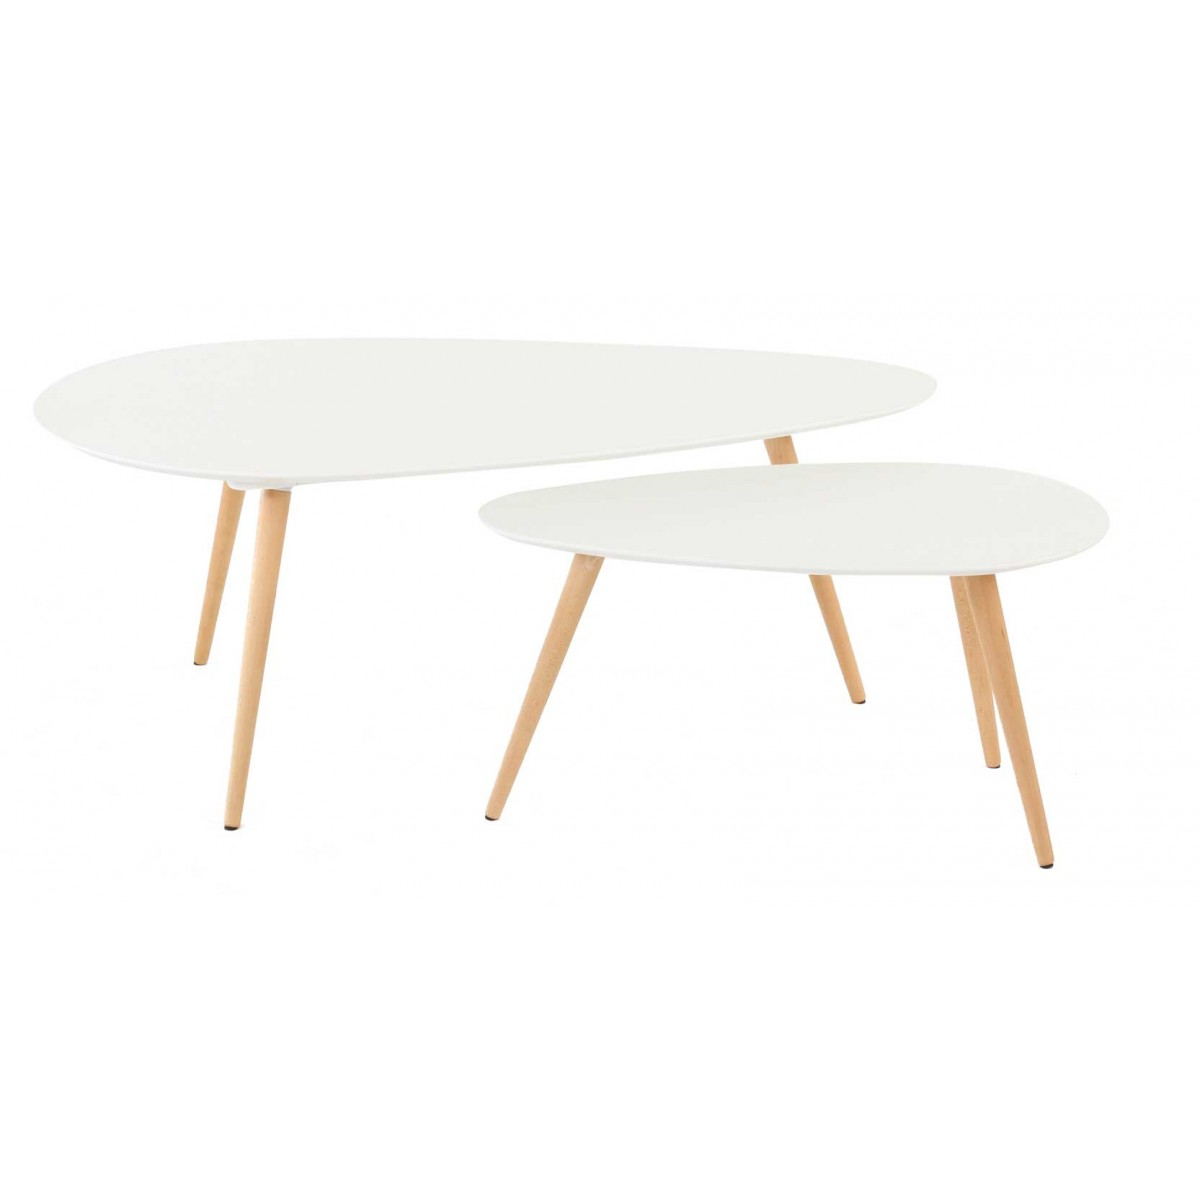 Tables basses gigognes ch ne et laqu blanc 116 cm scandie for Table basse blanc scandinave